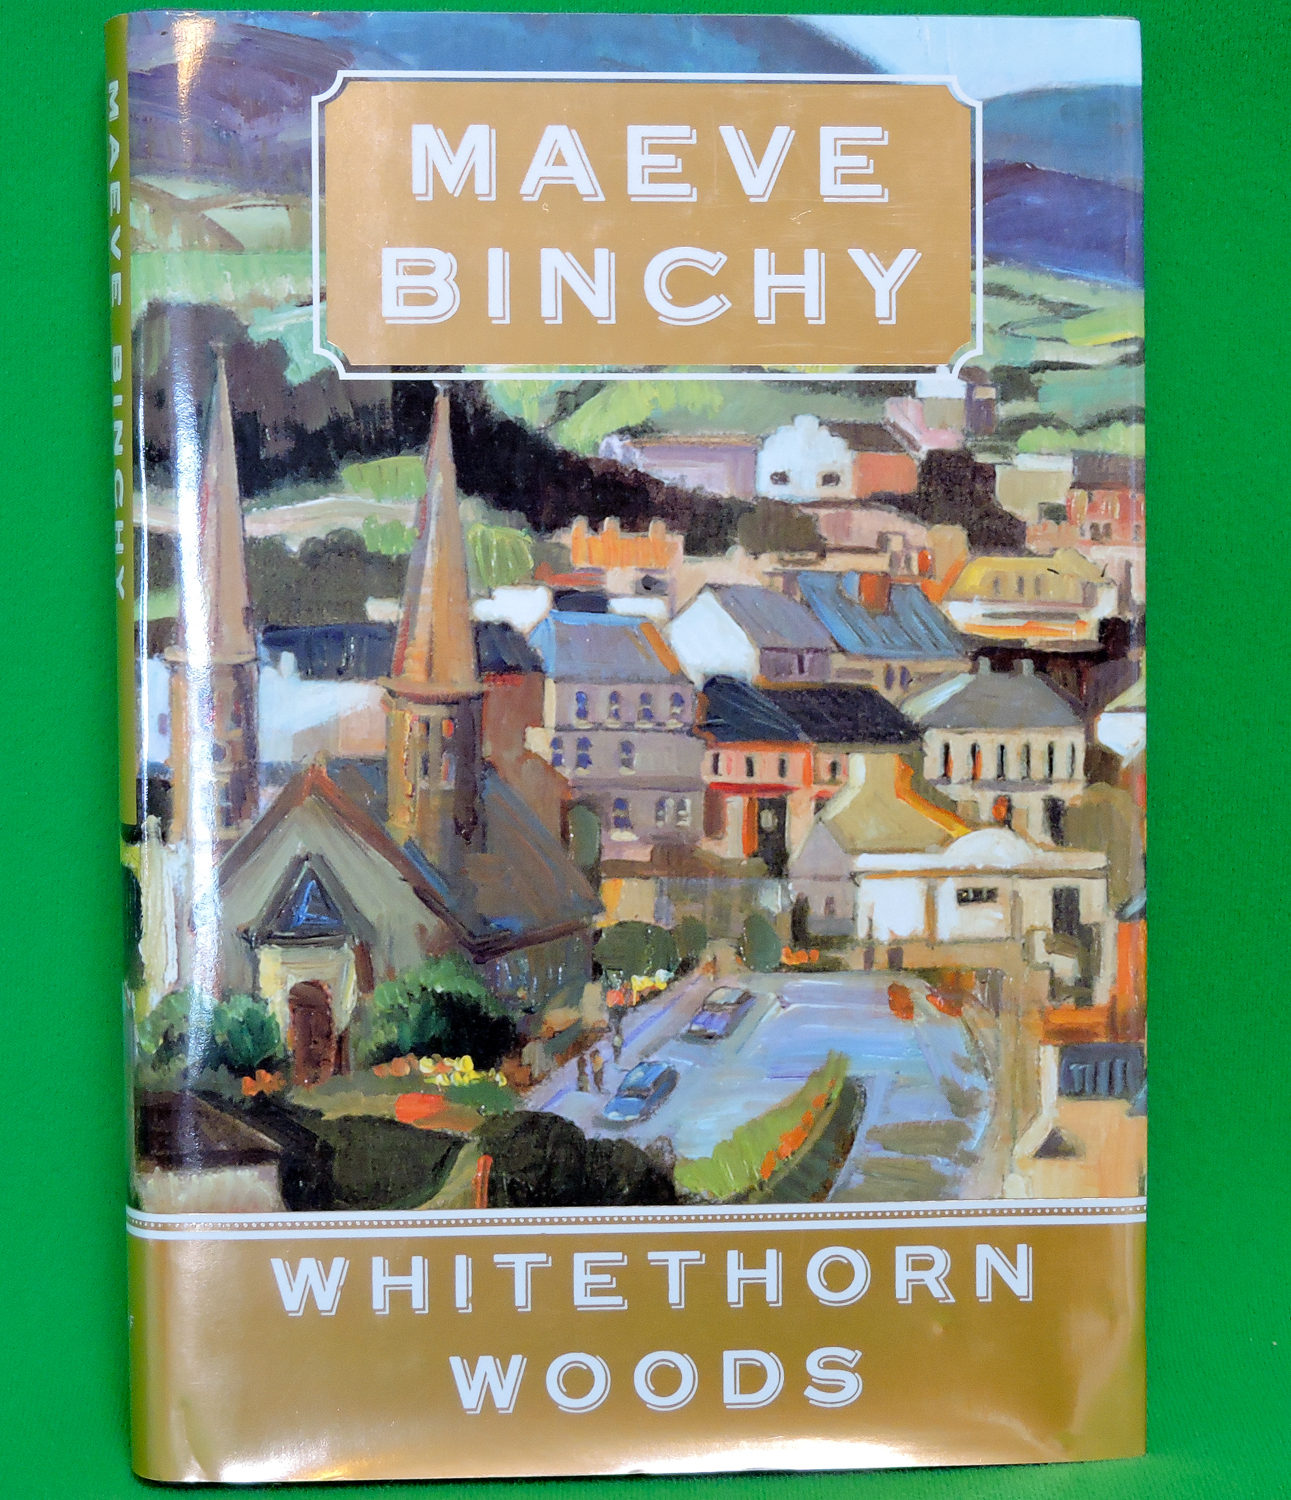 "2007 1st US Edition Book - ""Whitethorn Woods"" by Maeve Binchy - Mint!"